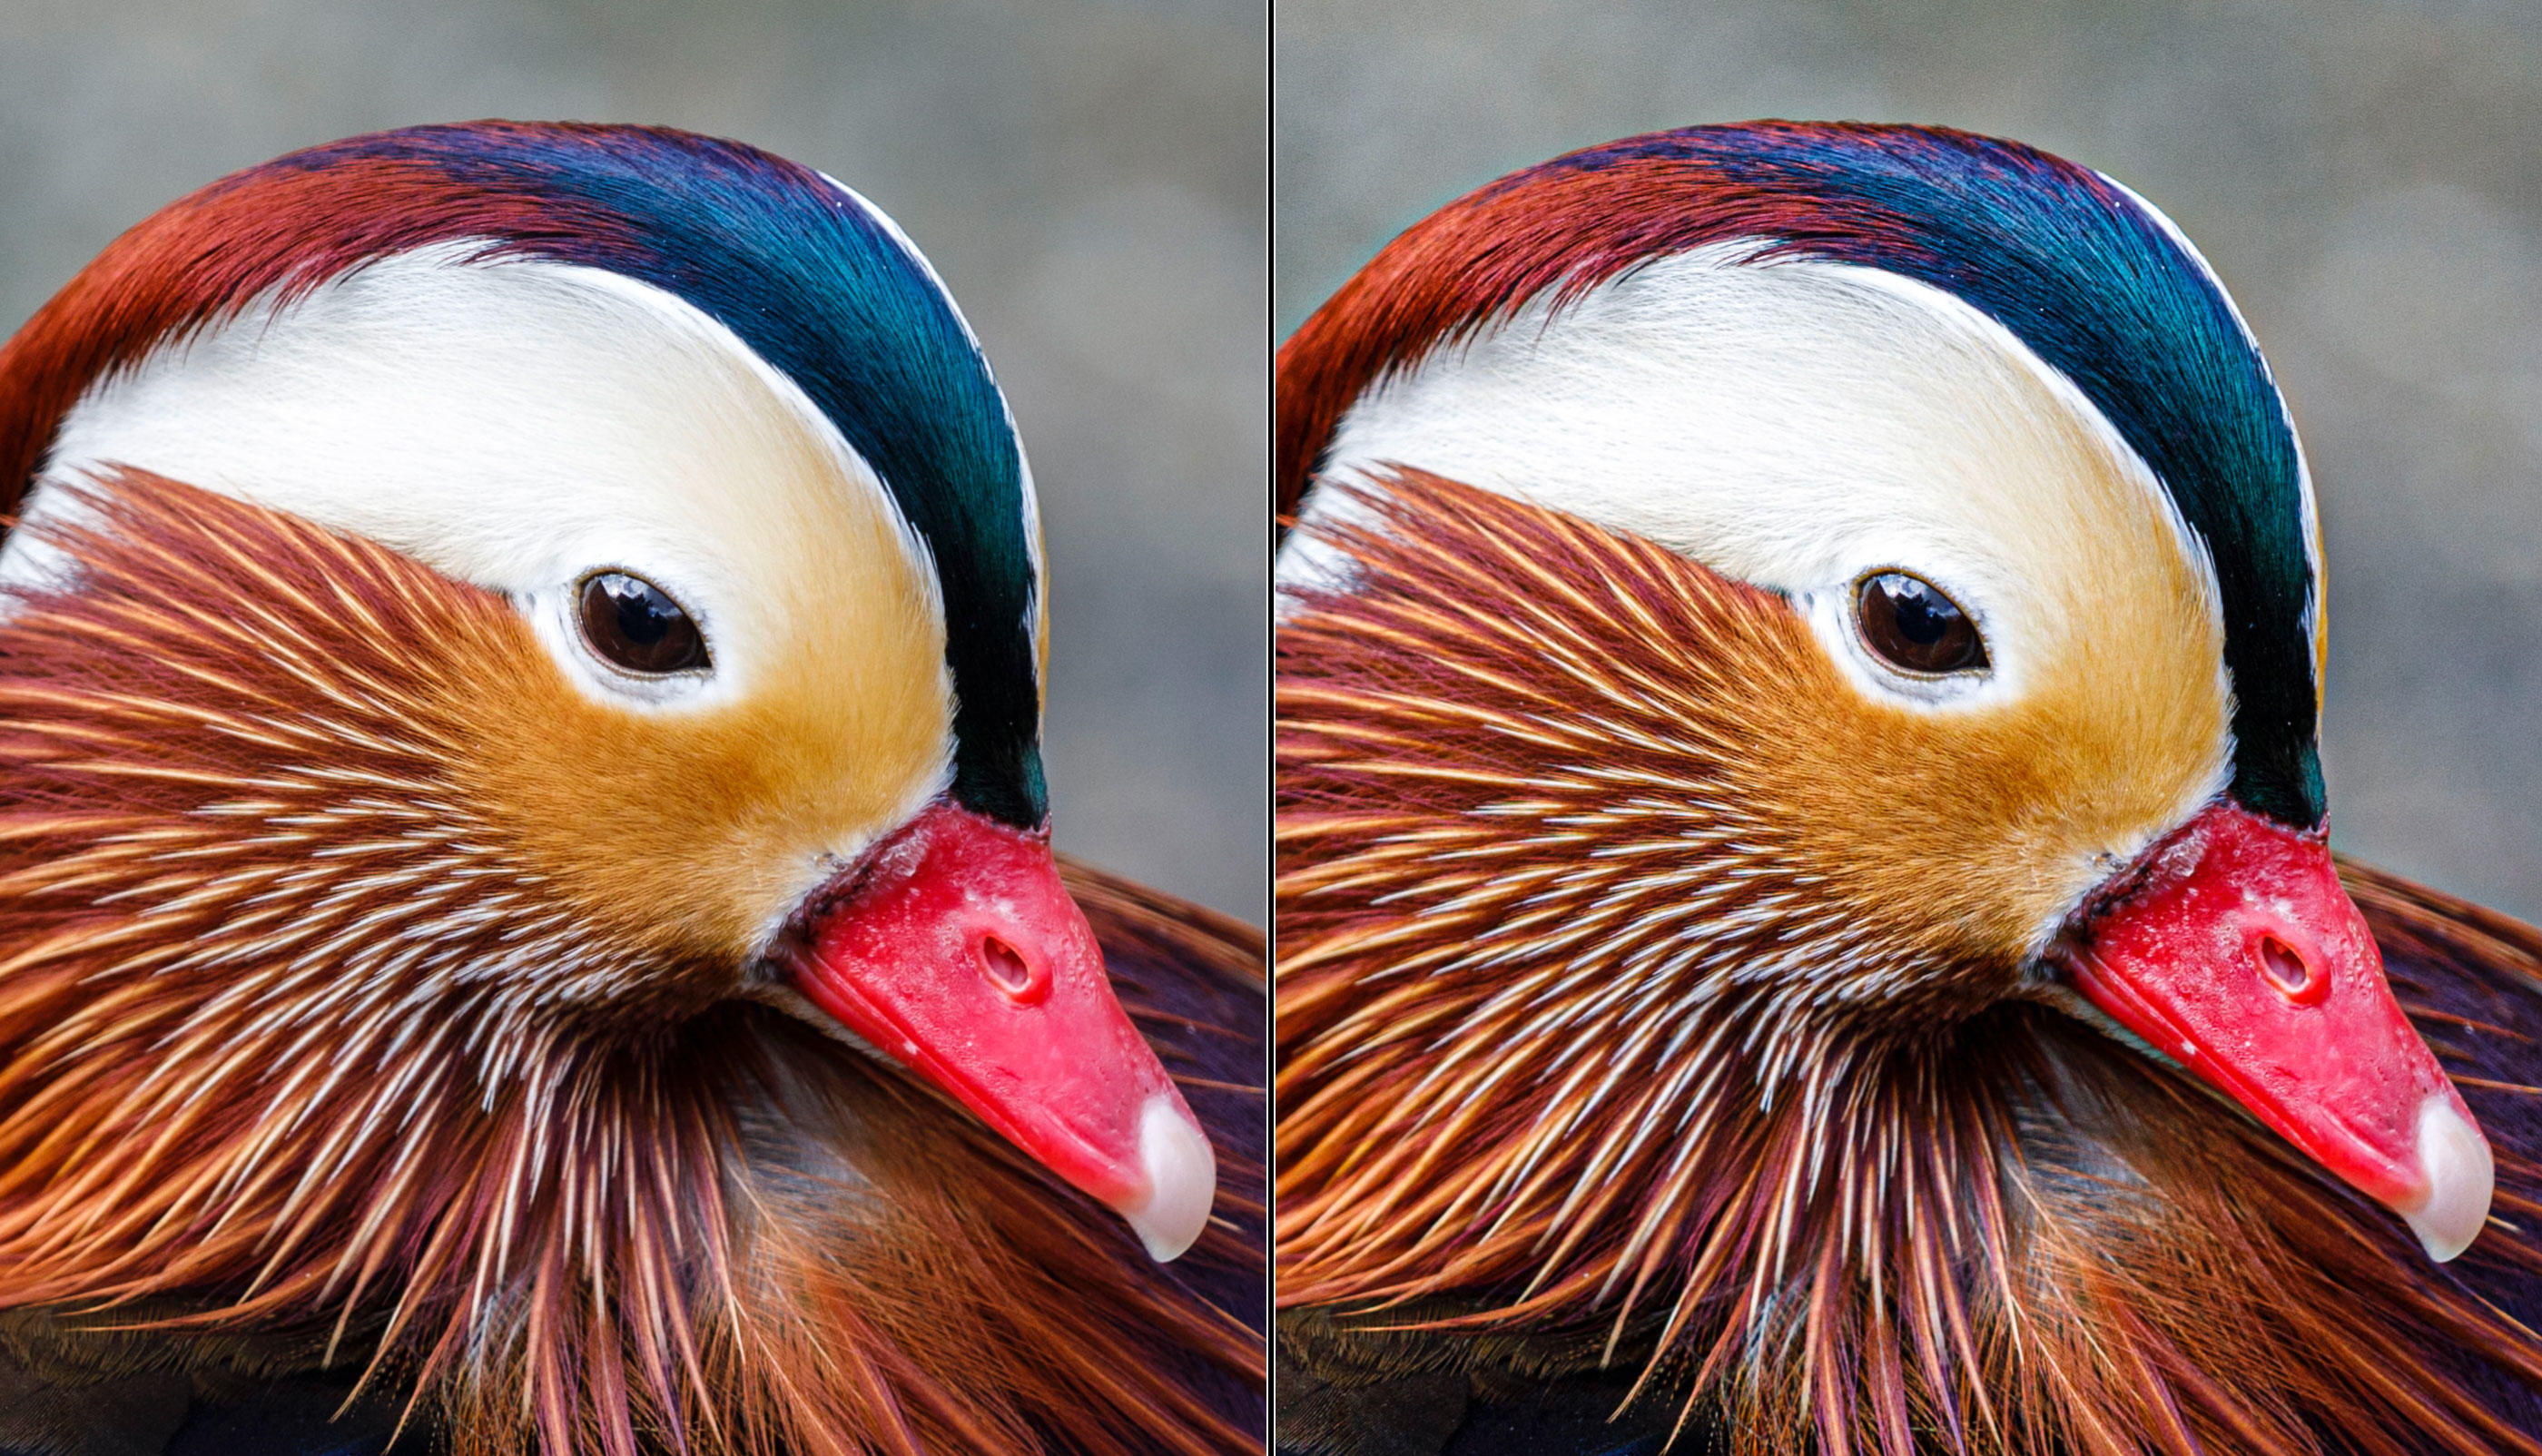 Lightroom texture tool and duck feathers